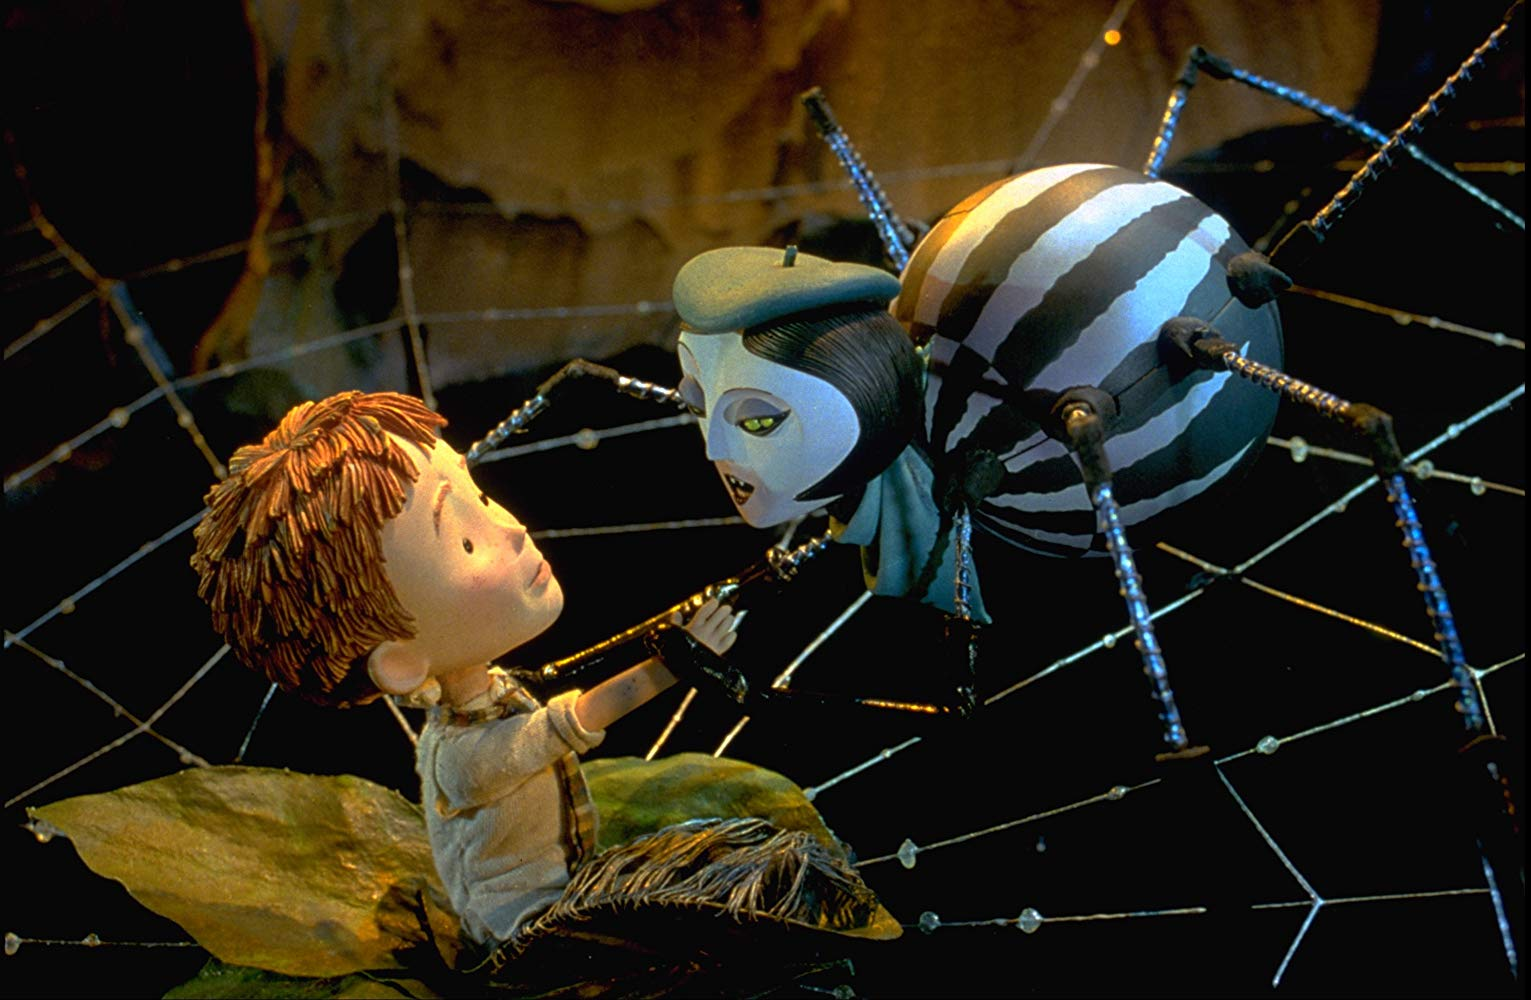 James (voiced by Paul Terry) and Spider (voiced by Susan Sarandon) in James and the Giant Peach (1996)